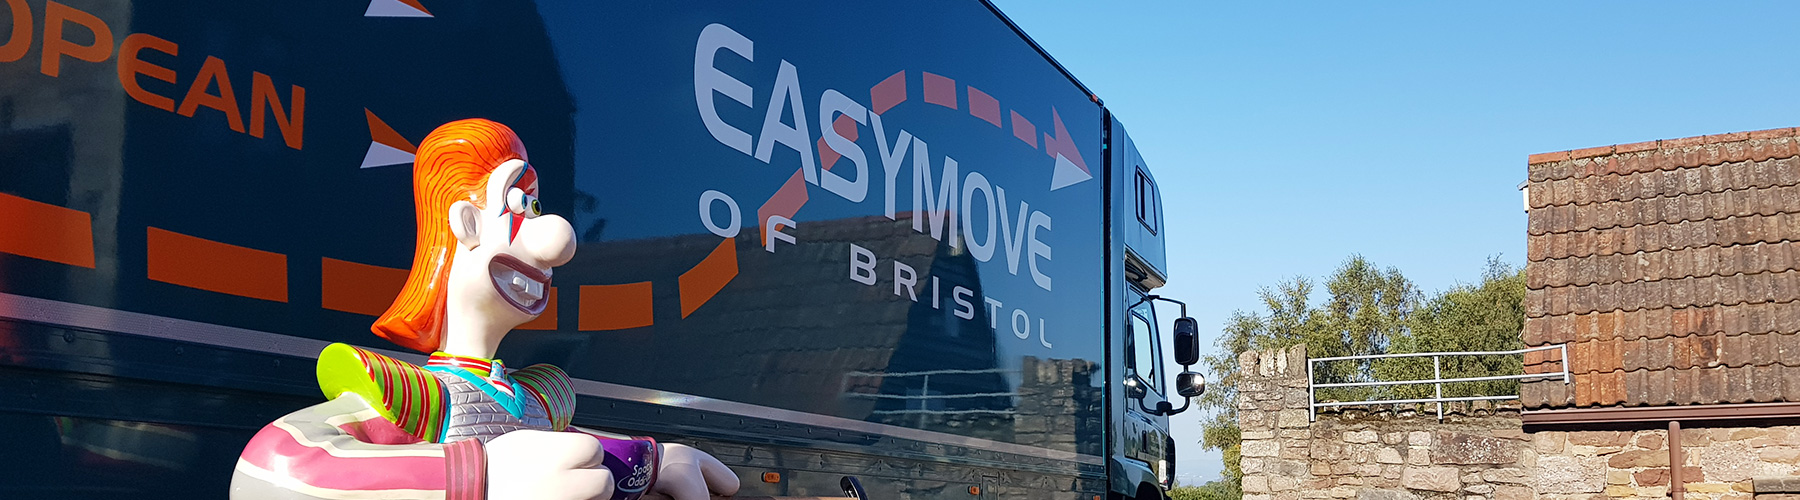 Easymove Bristol | Removals and Storage | About Us